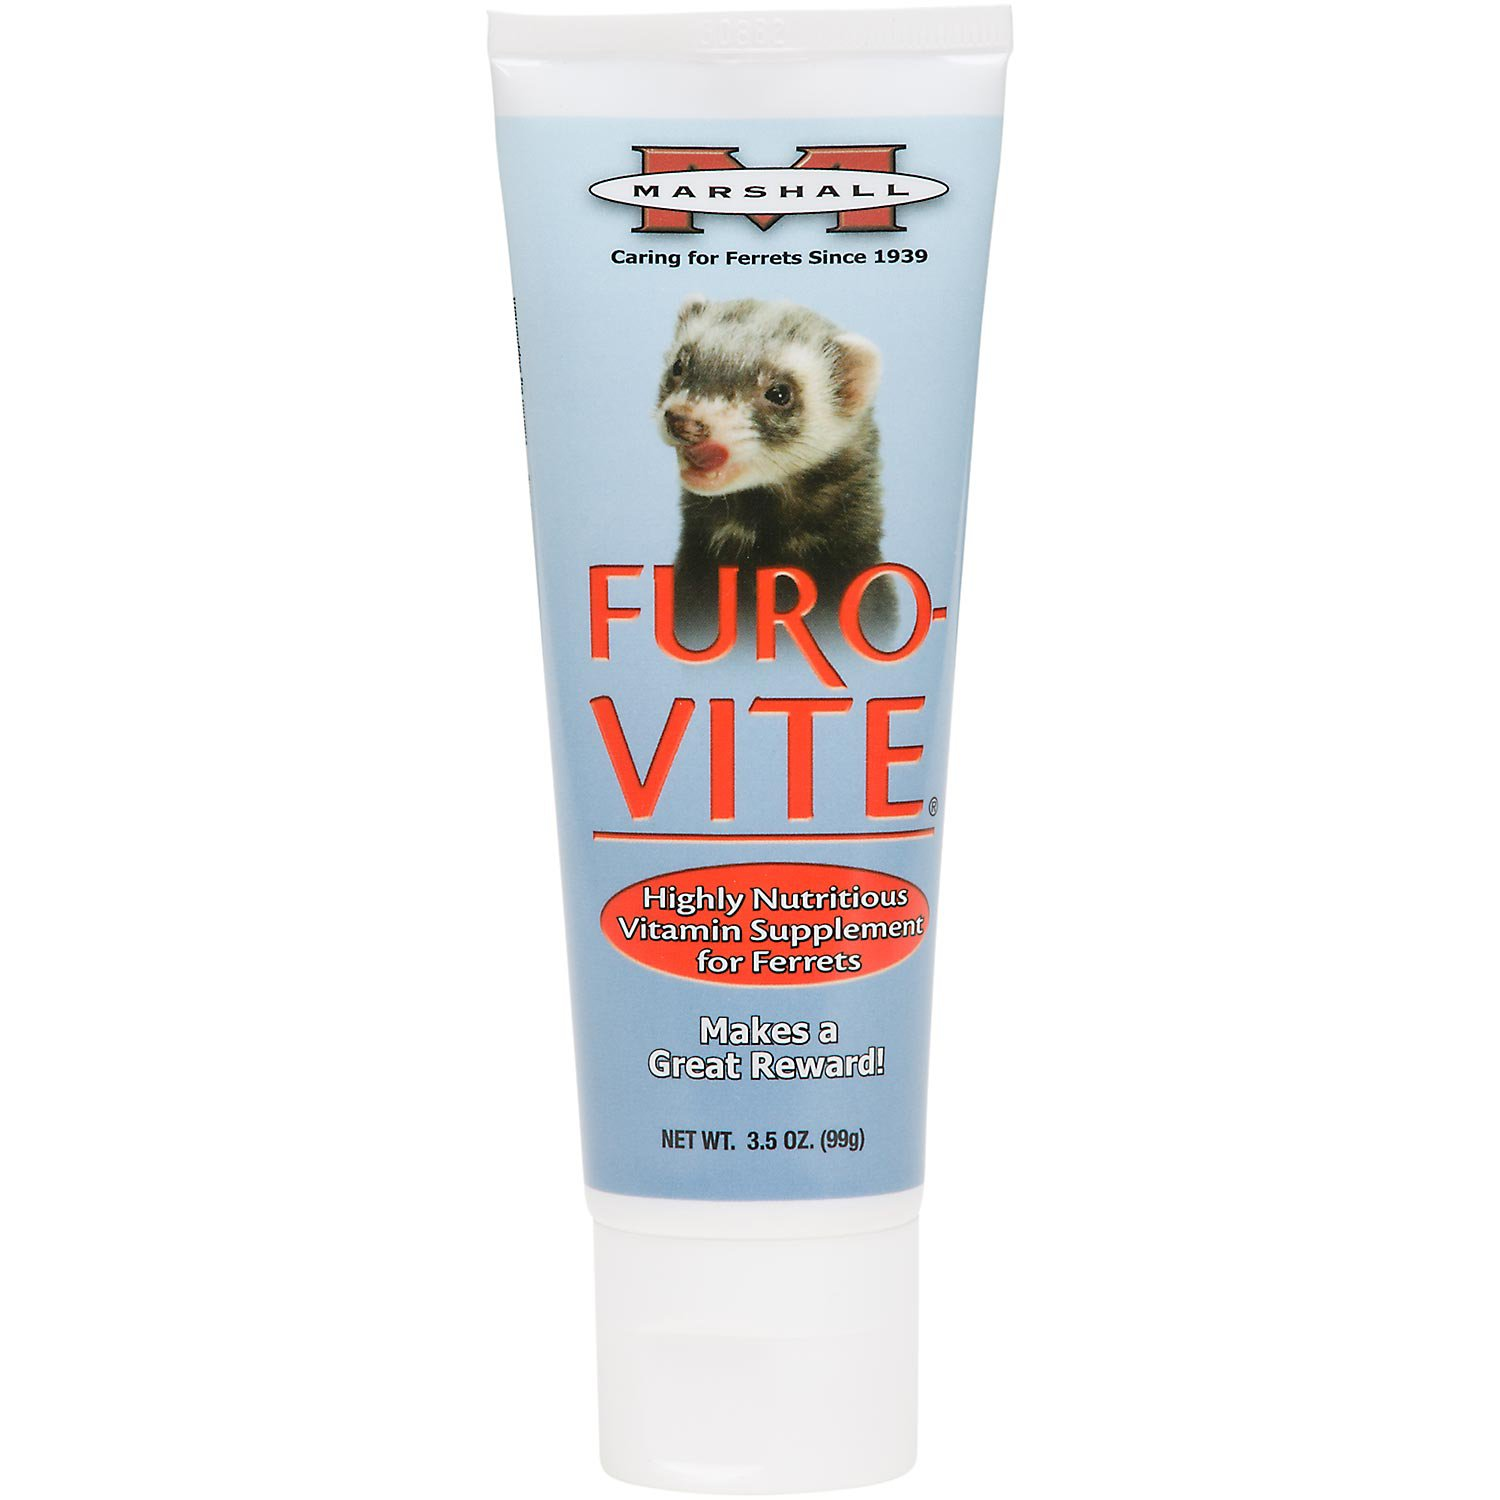 Marshall Pet Products Furo Vite Highly Nutritious Ferret